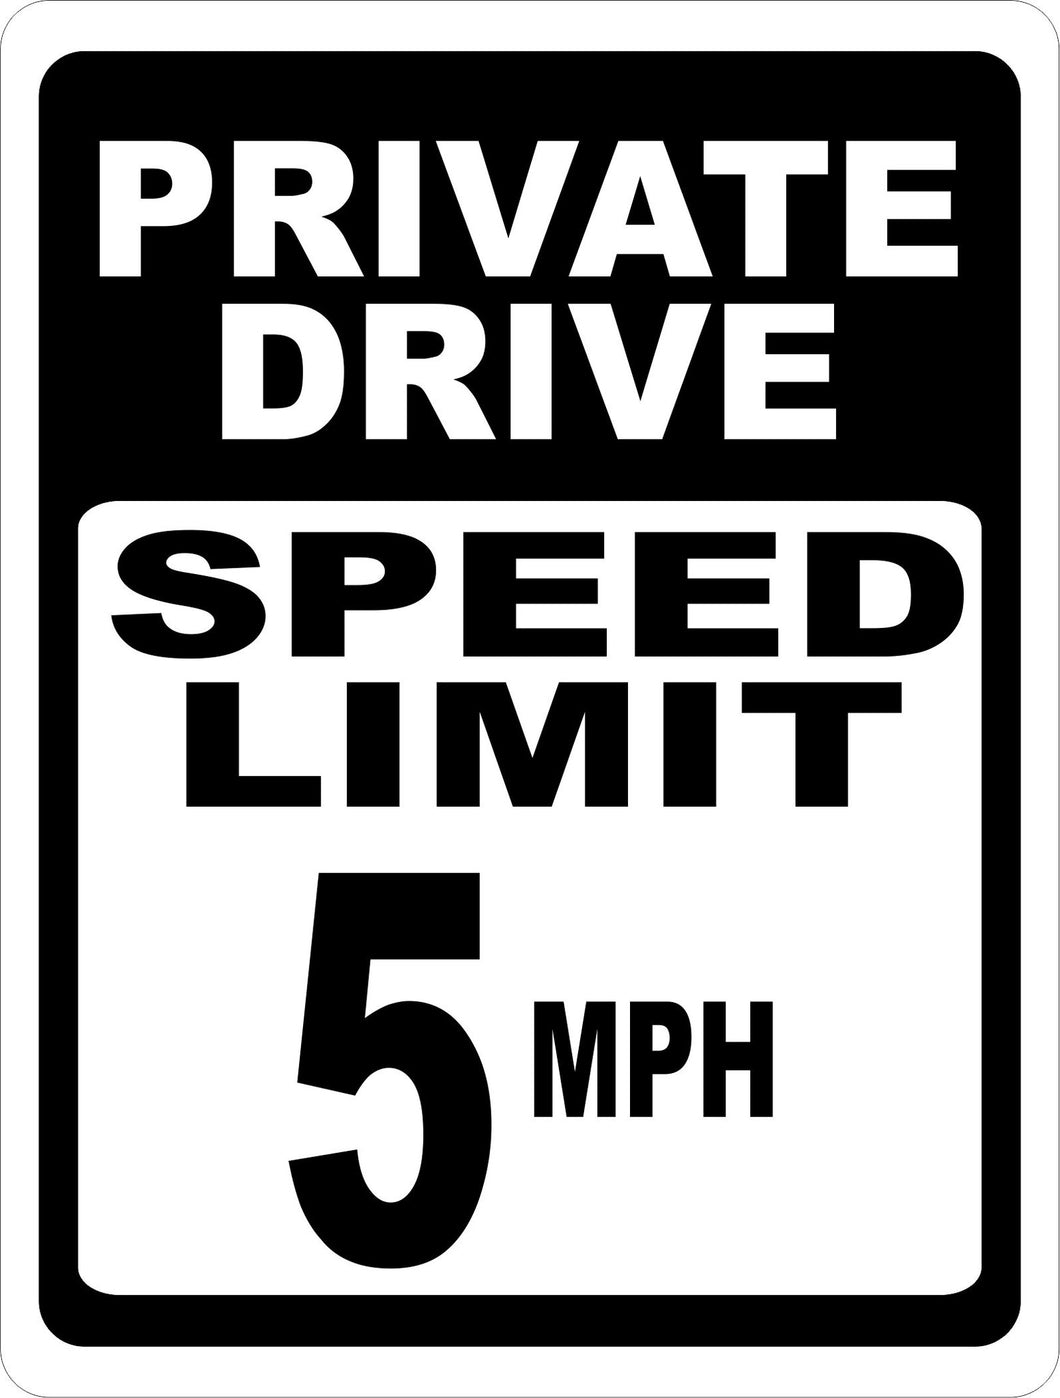 Private Driveway 5 MPH Sign - Signs & Decals by SalaGraphics